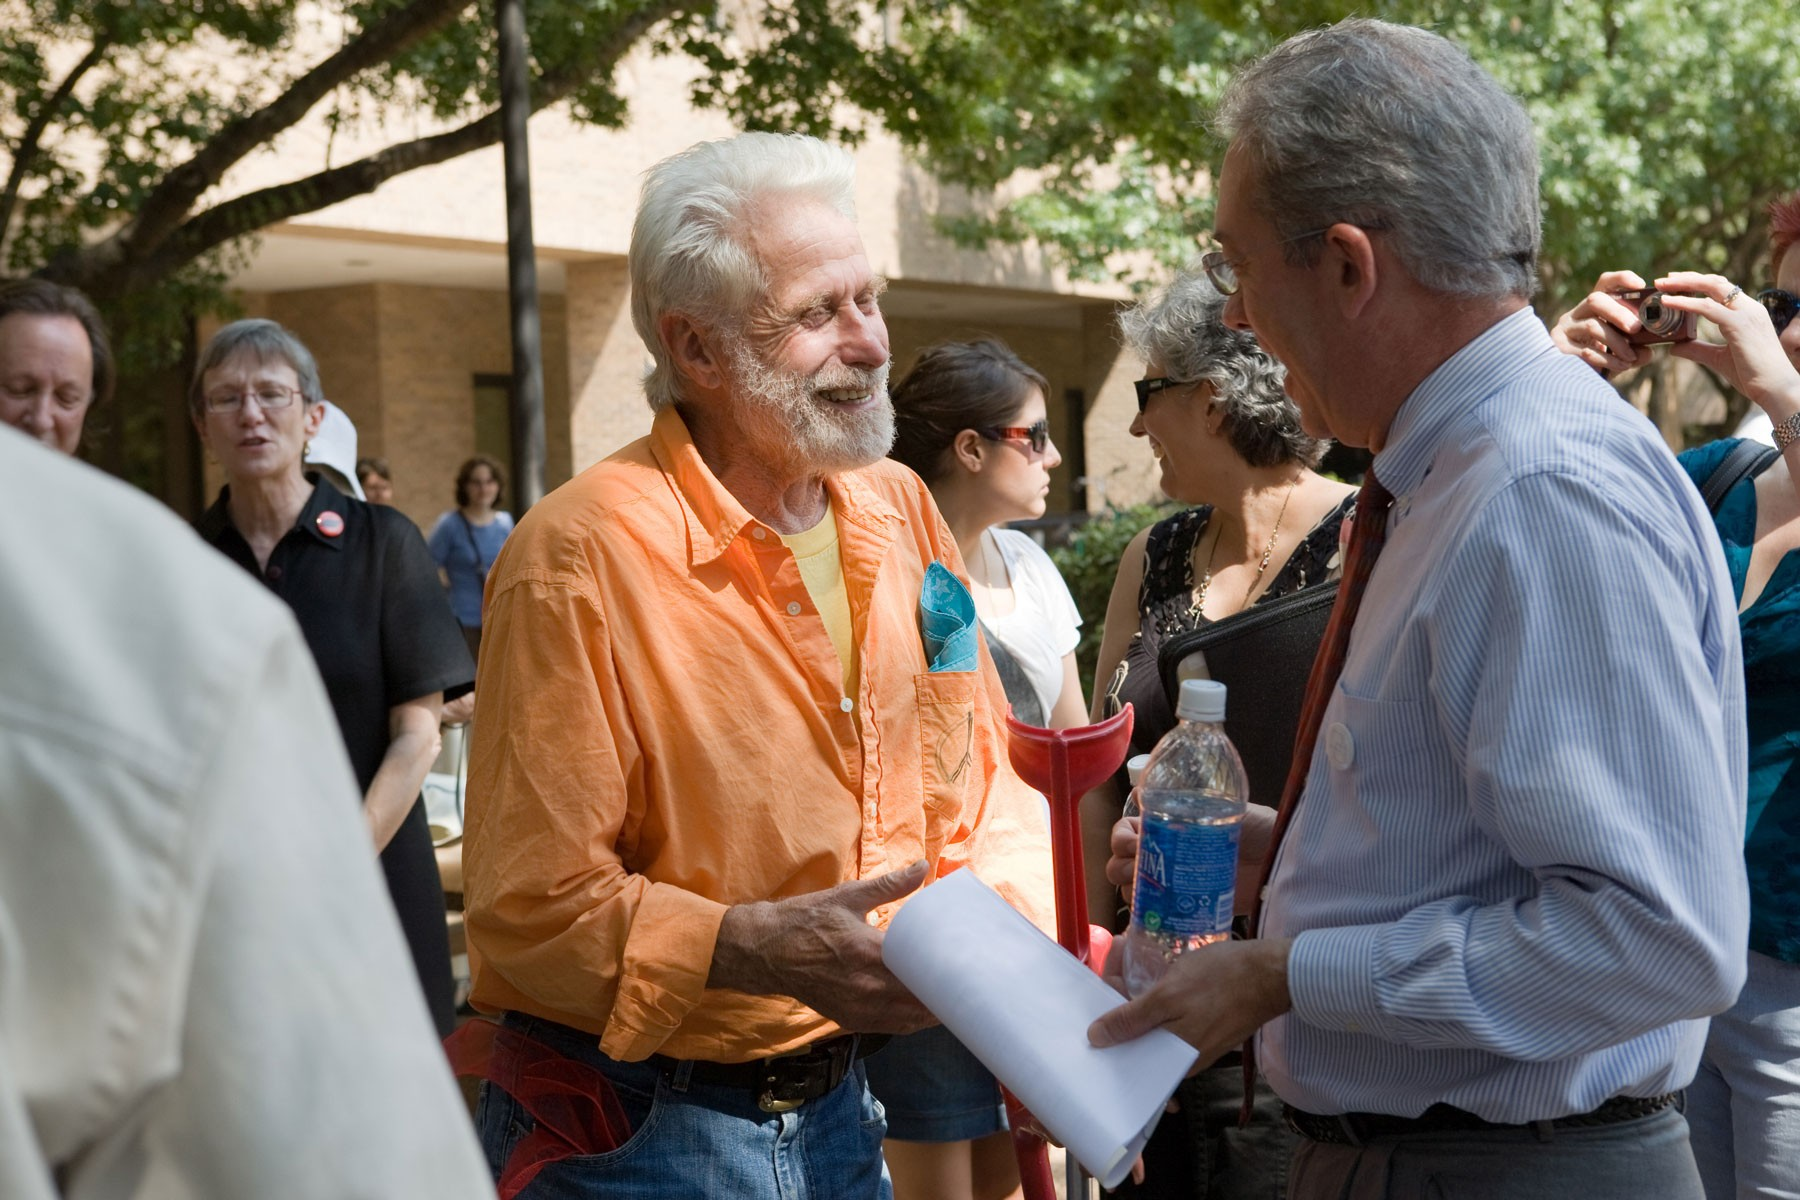 An older man talking to another man